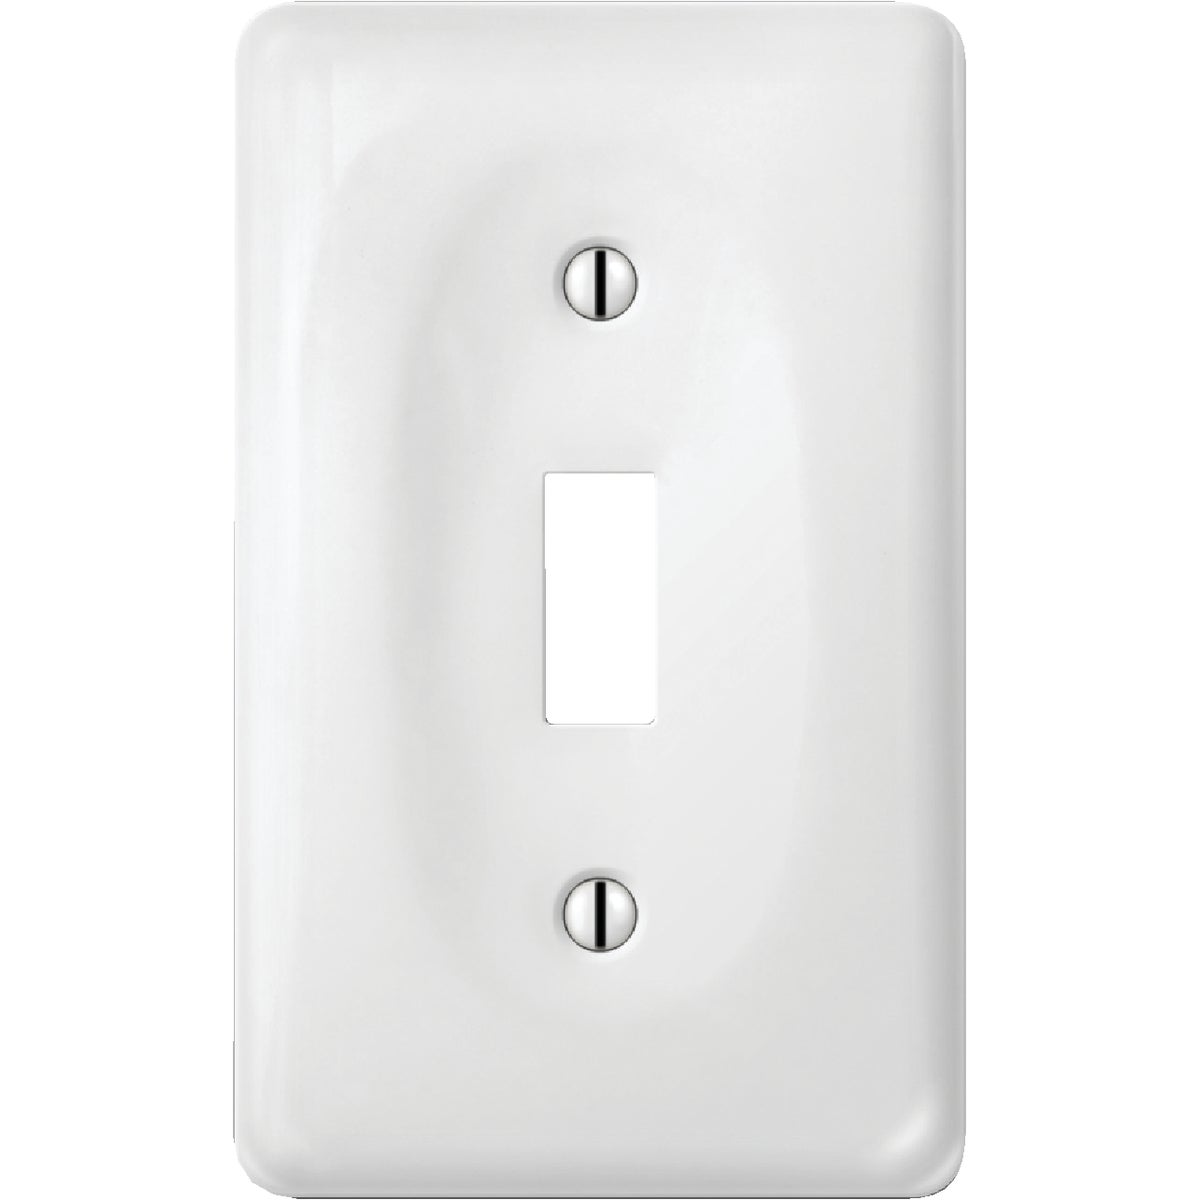 WHT PORC 1TOG WALL PLATE - 981CW by Jackson Deerfield Mf